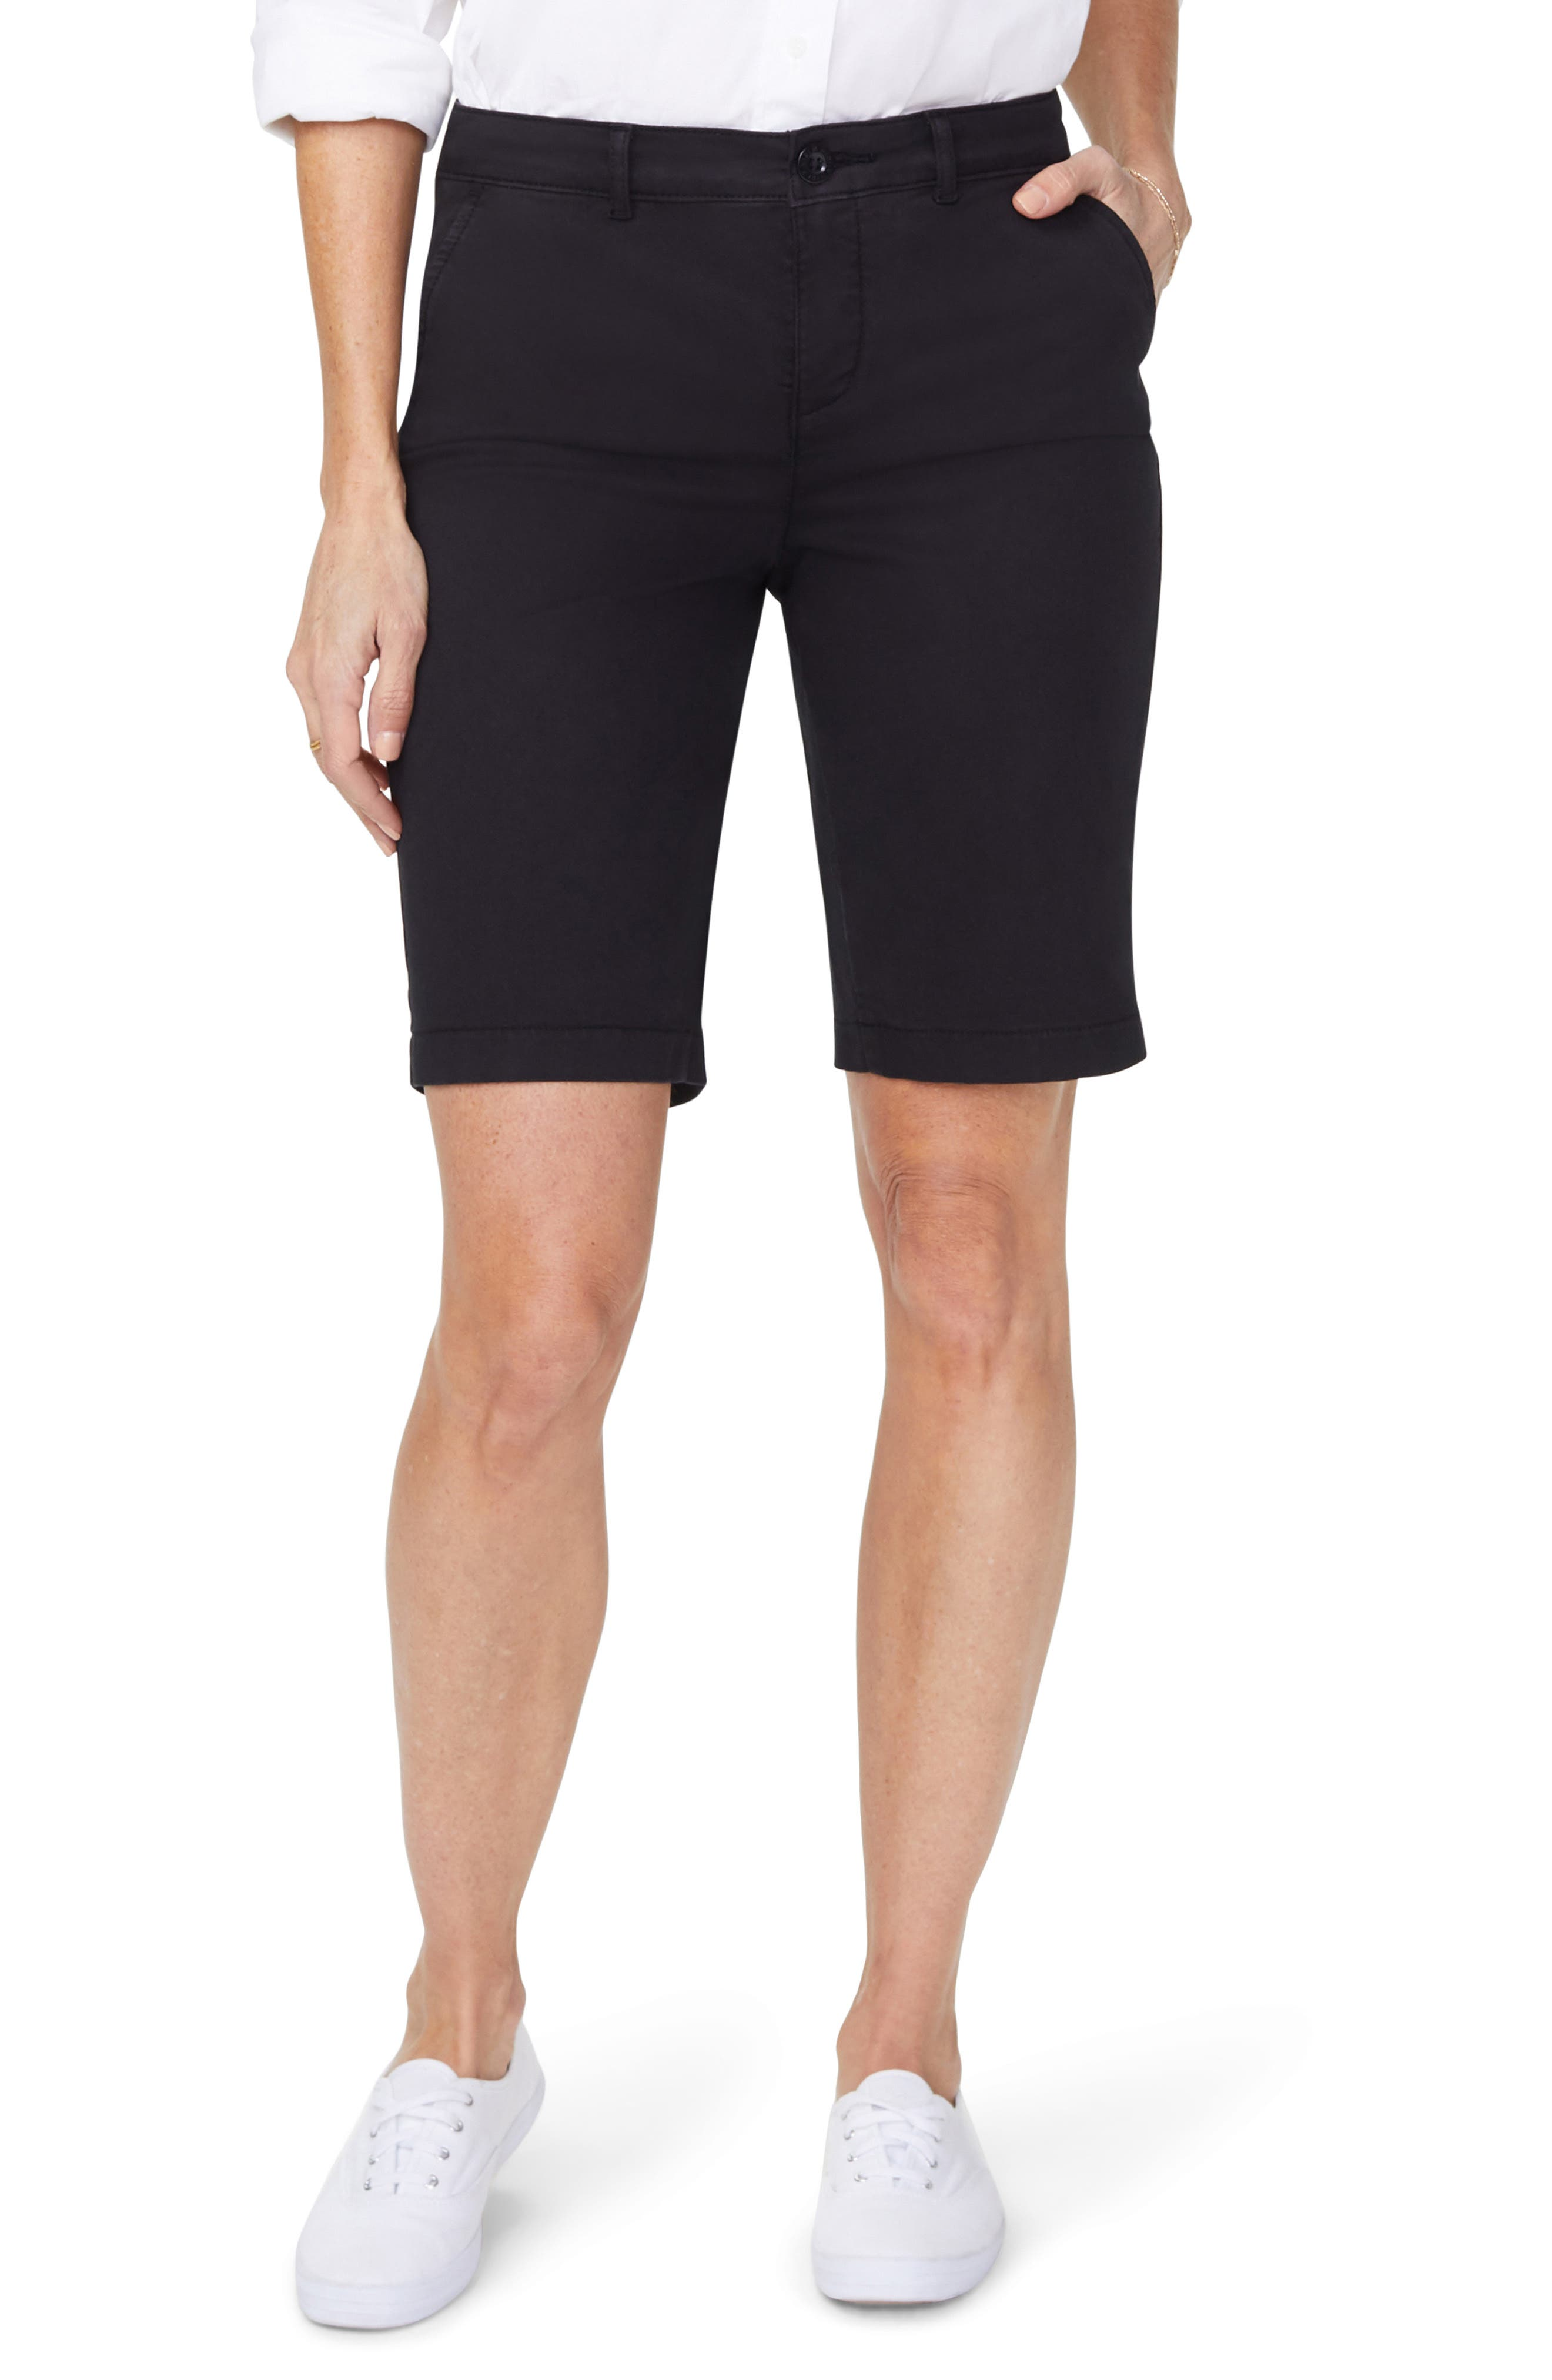 Petite Women's Nydj Stretch Cotton Blend Twill Bermuda Shorts,  4P - Black